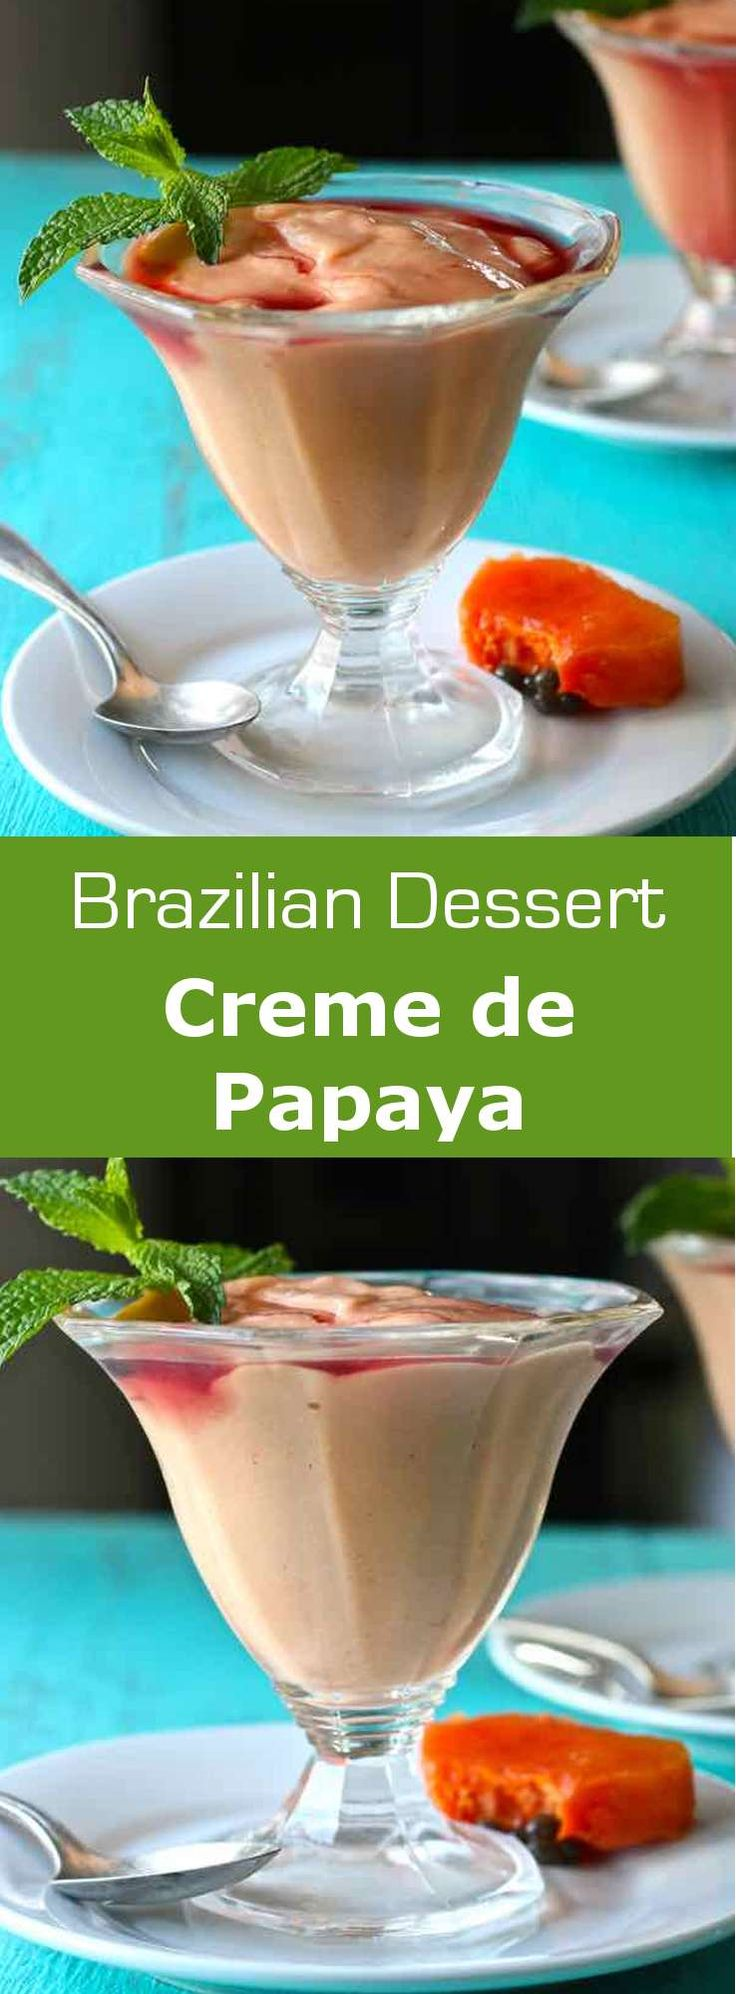 59 best 196 international desserts images on pinterest balloon creme de papaya is a very easy to make luscious brazilian dessert that consists forumfinder Choice Image